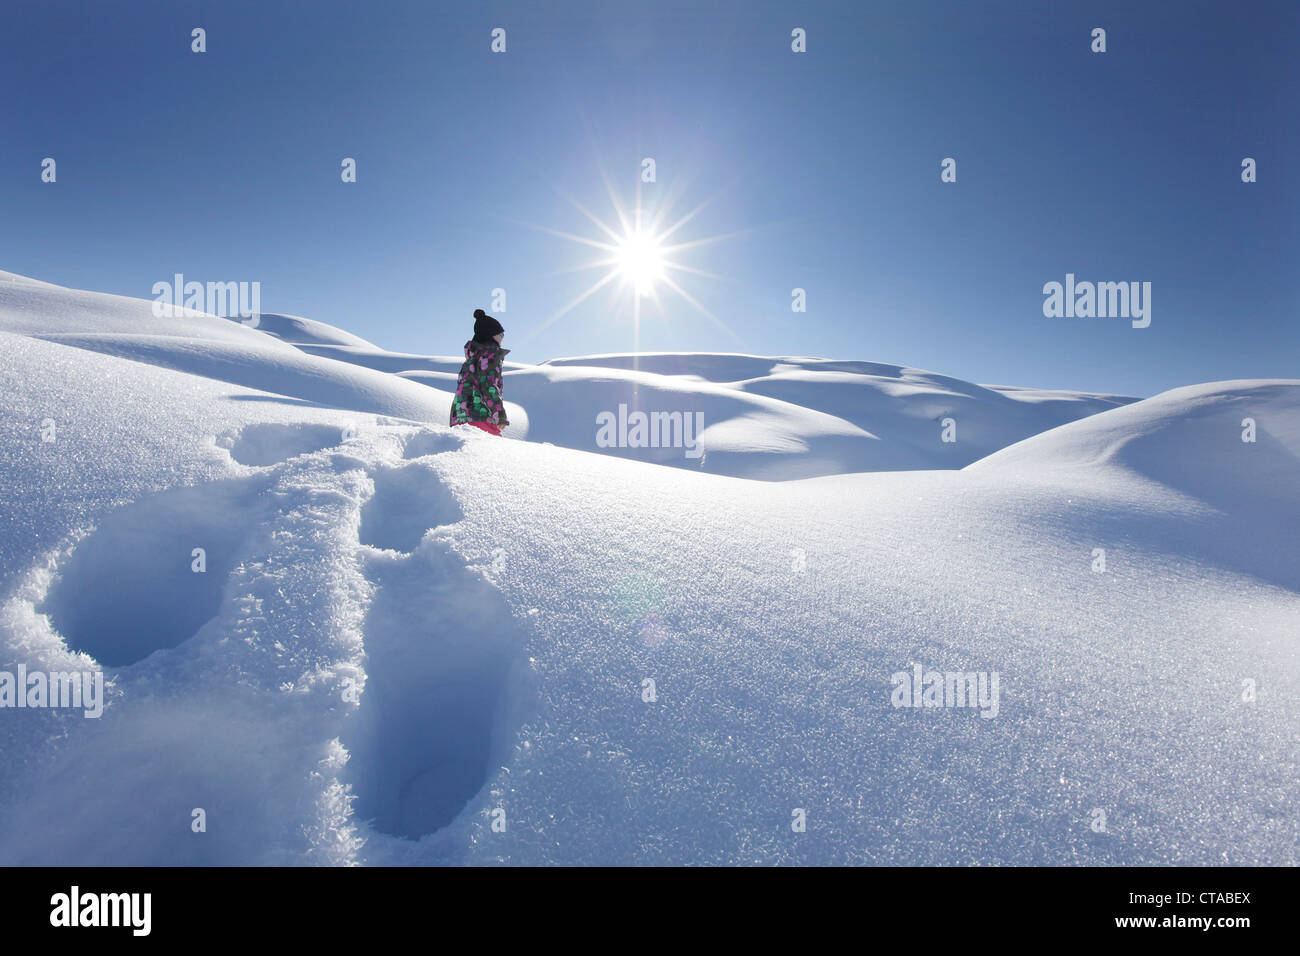 Young girl trudging through deep snow, Kloesterle, Arlberg, Tyrol, Austria - Stock Image